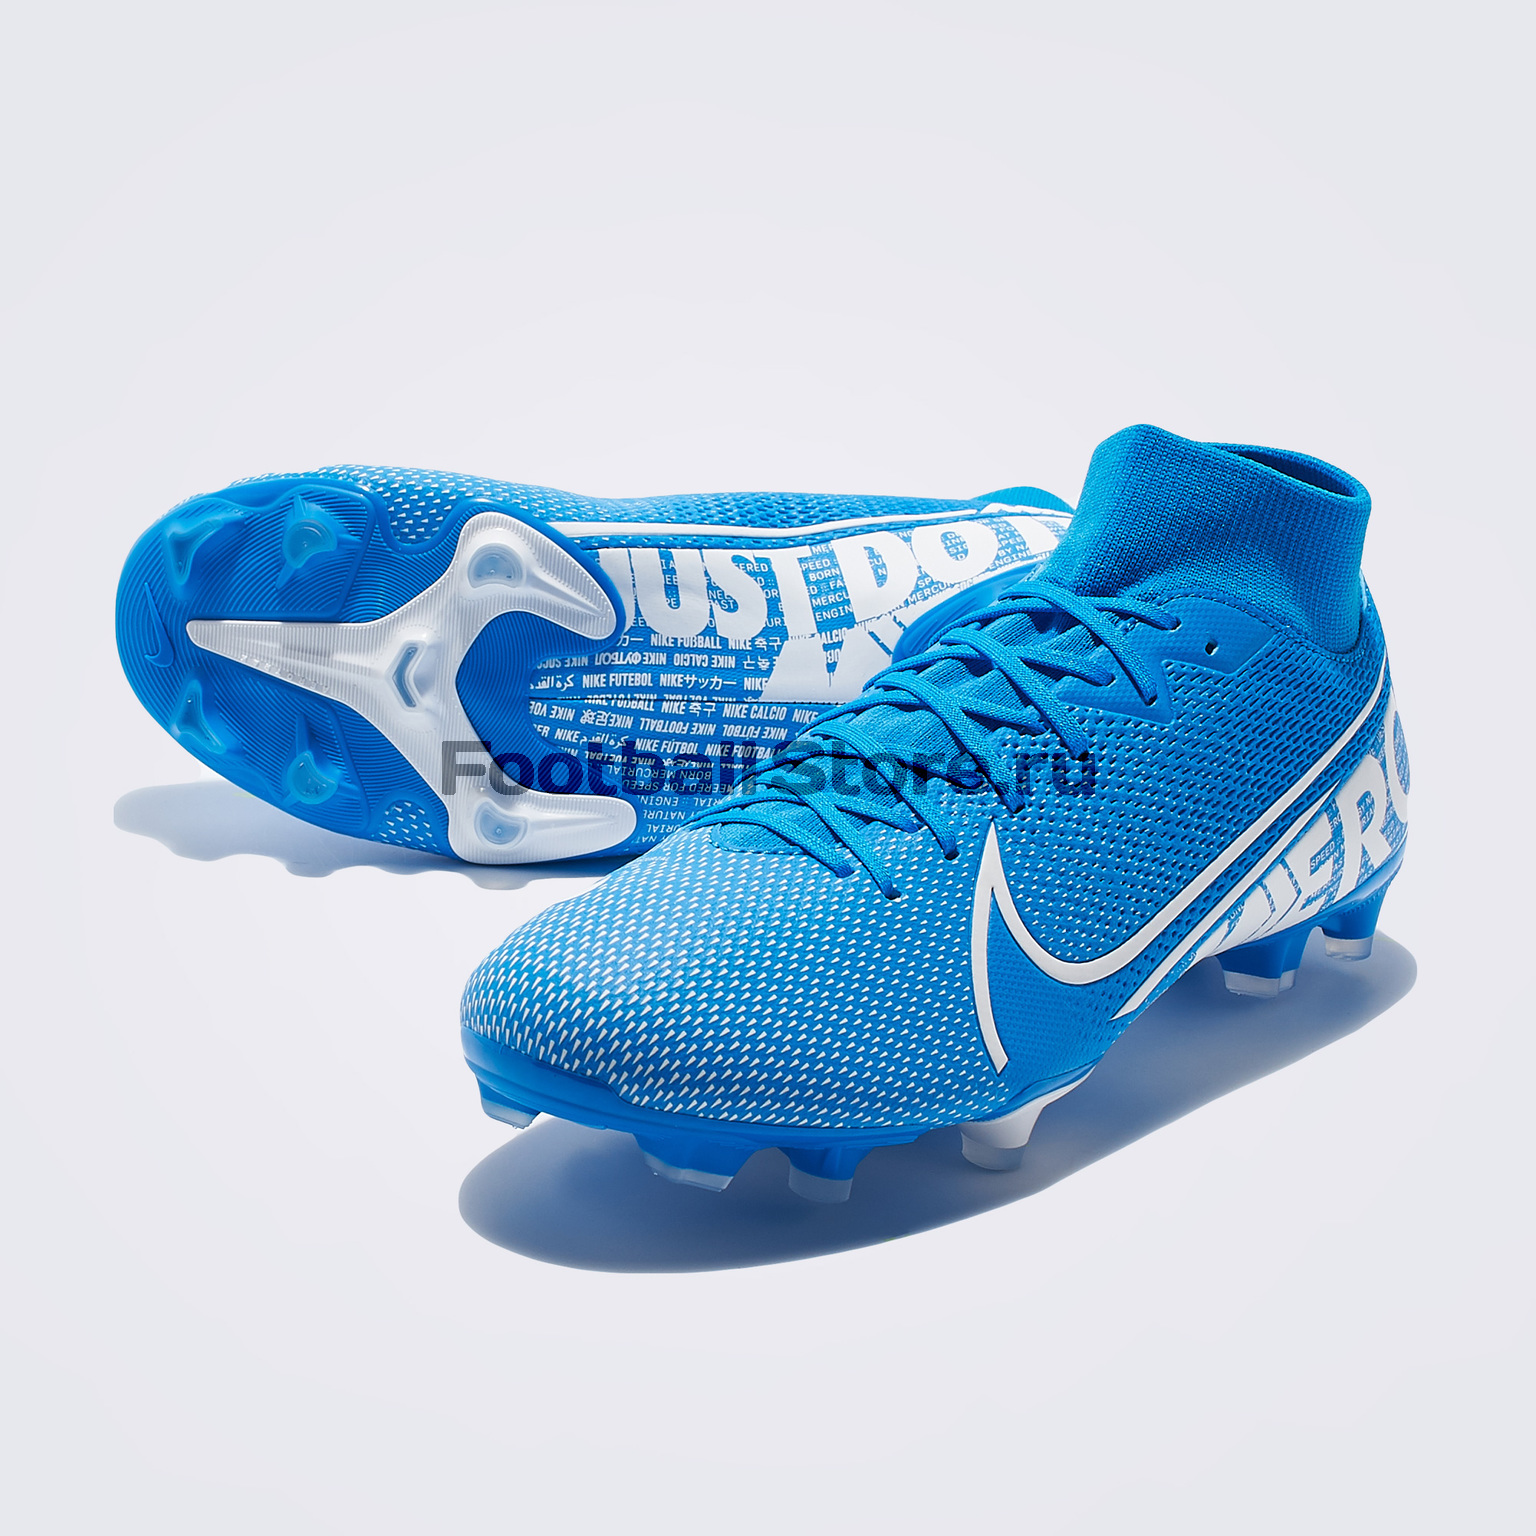 Бутсы Nike Superfly 7 Academy FG/MG AT7946-414 все цены